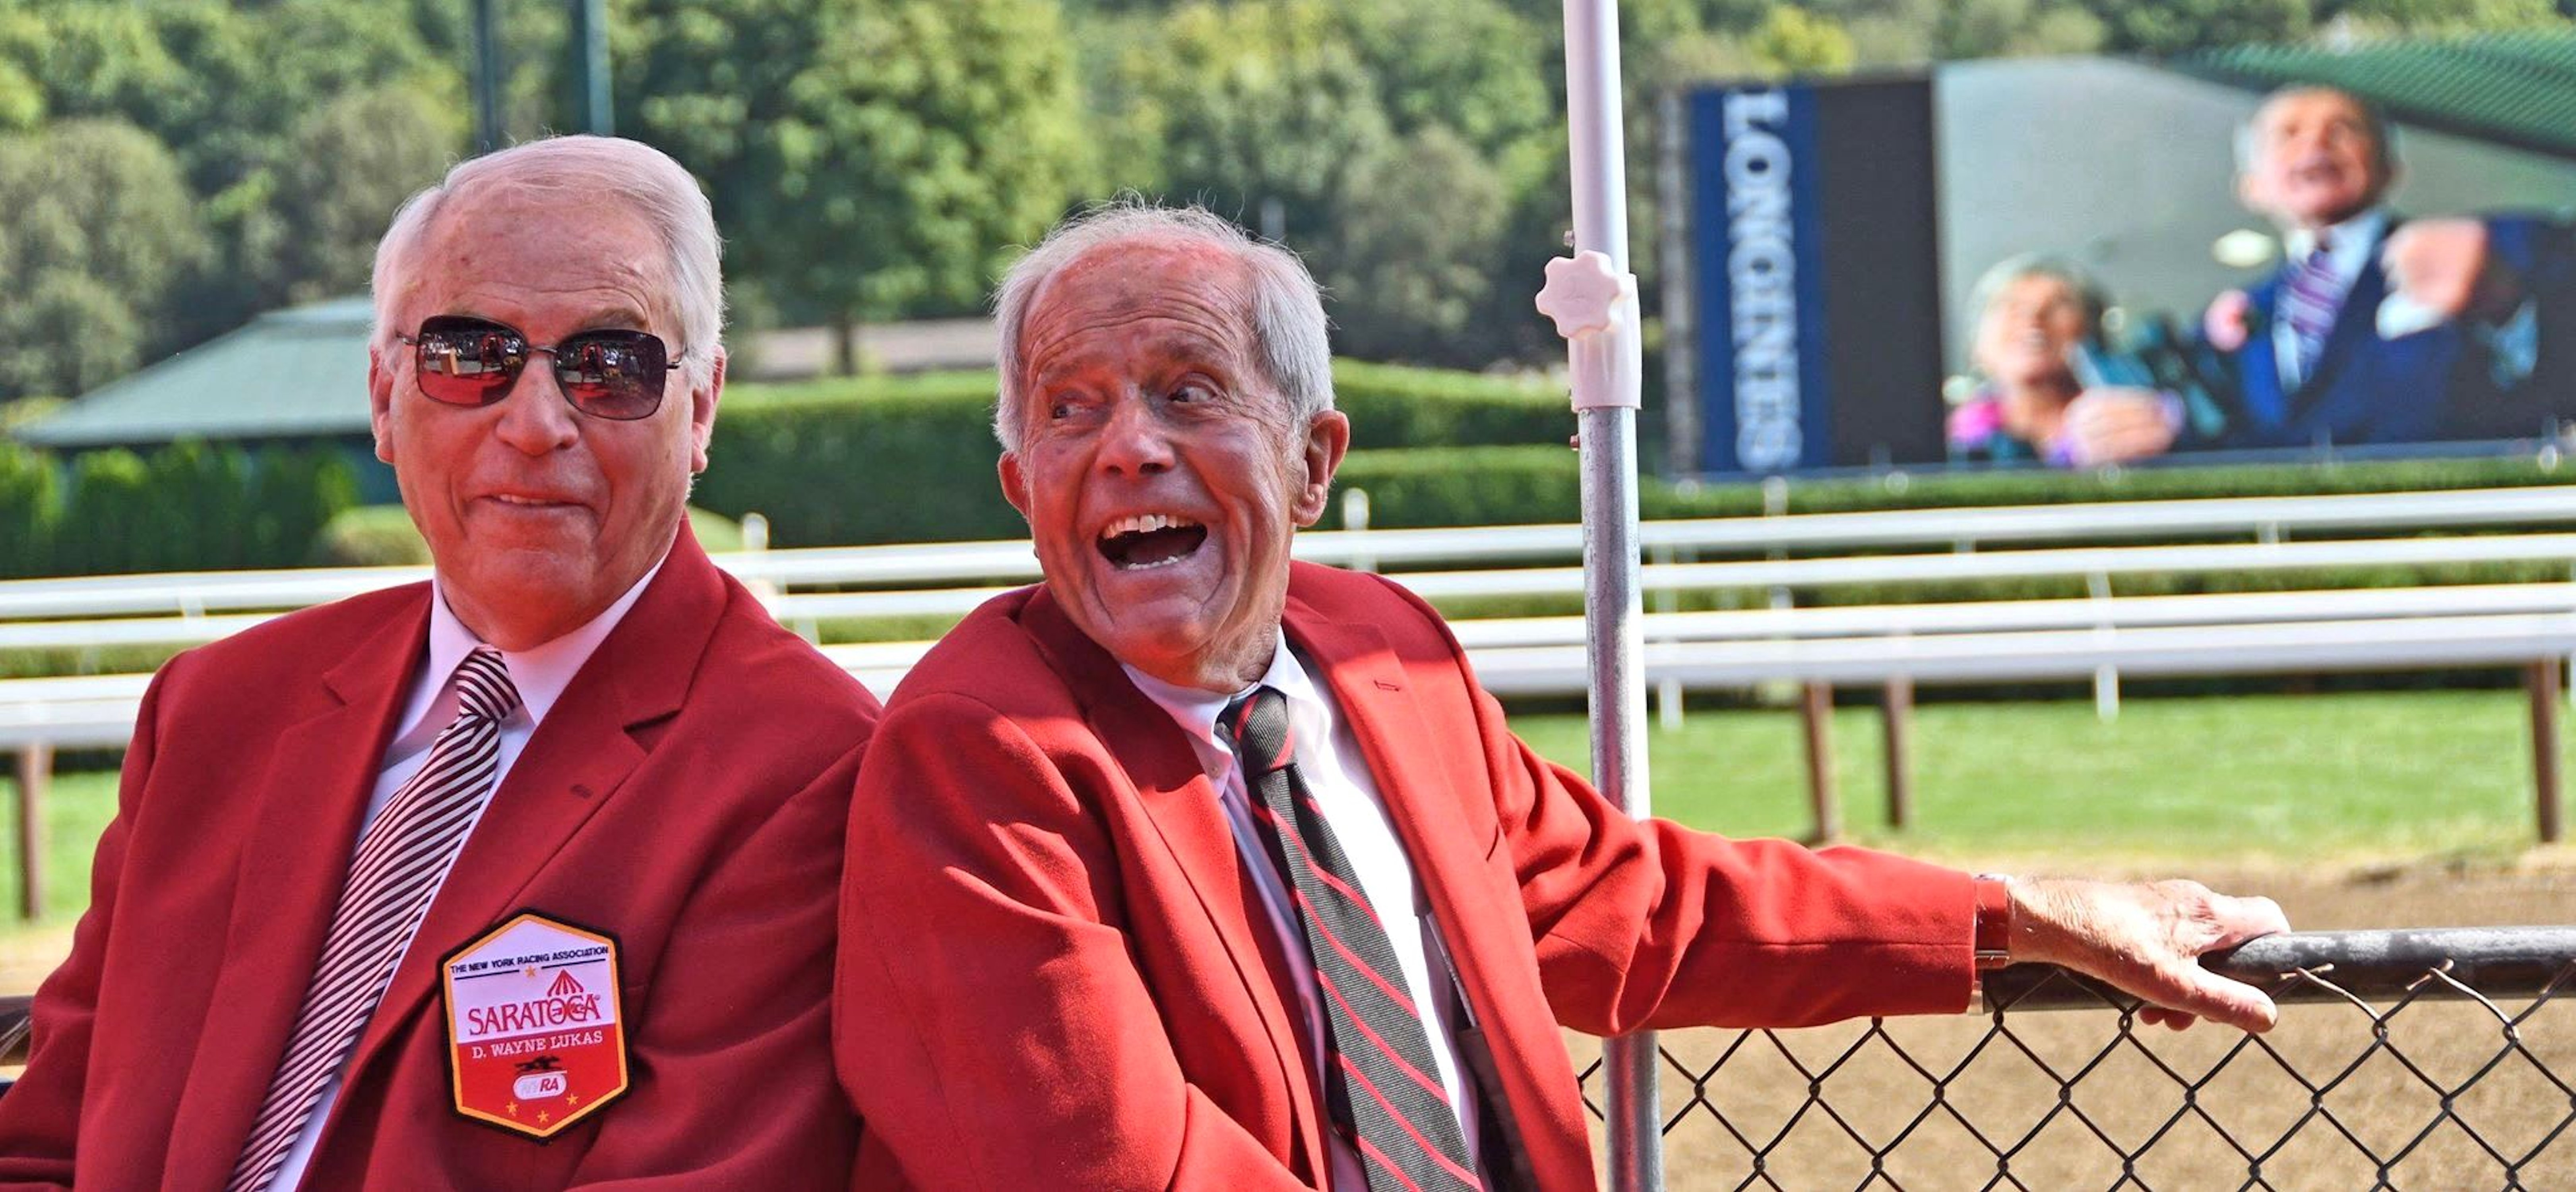 Trainer D. Wayne Lukas and Cot Campbell wear their red jackets during the 2018 Saratoga Walk of Fame ceremony (Barry Bornstein)